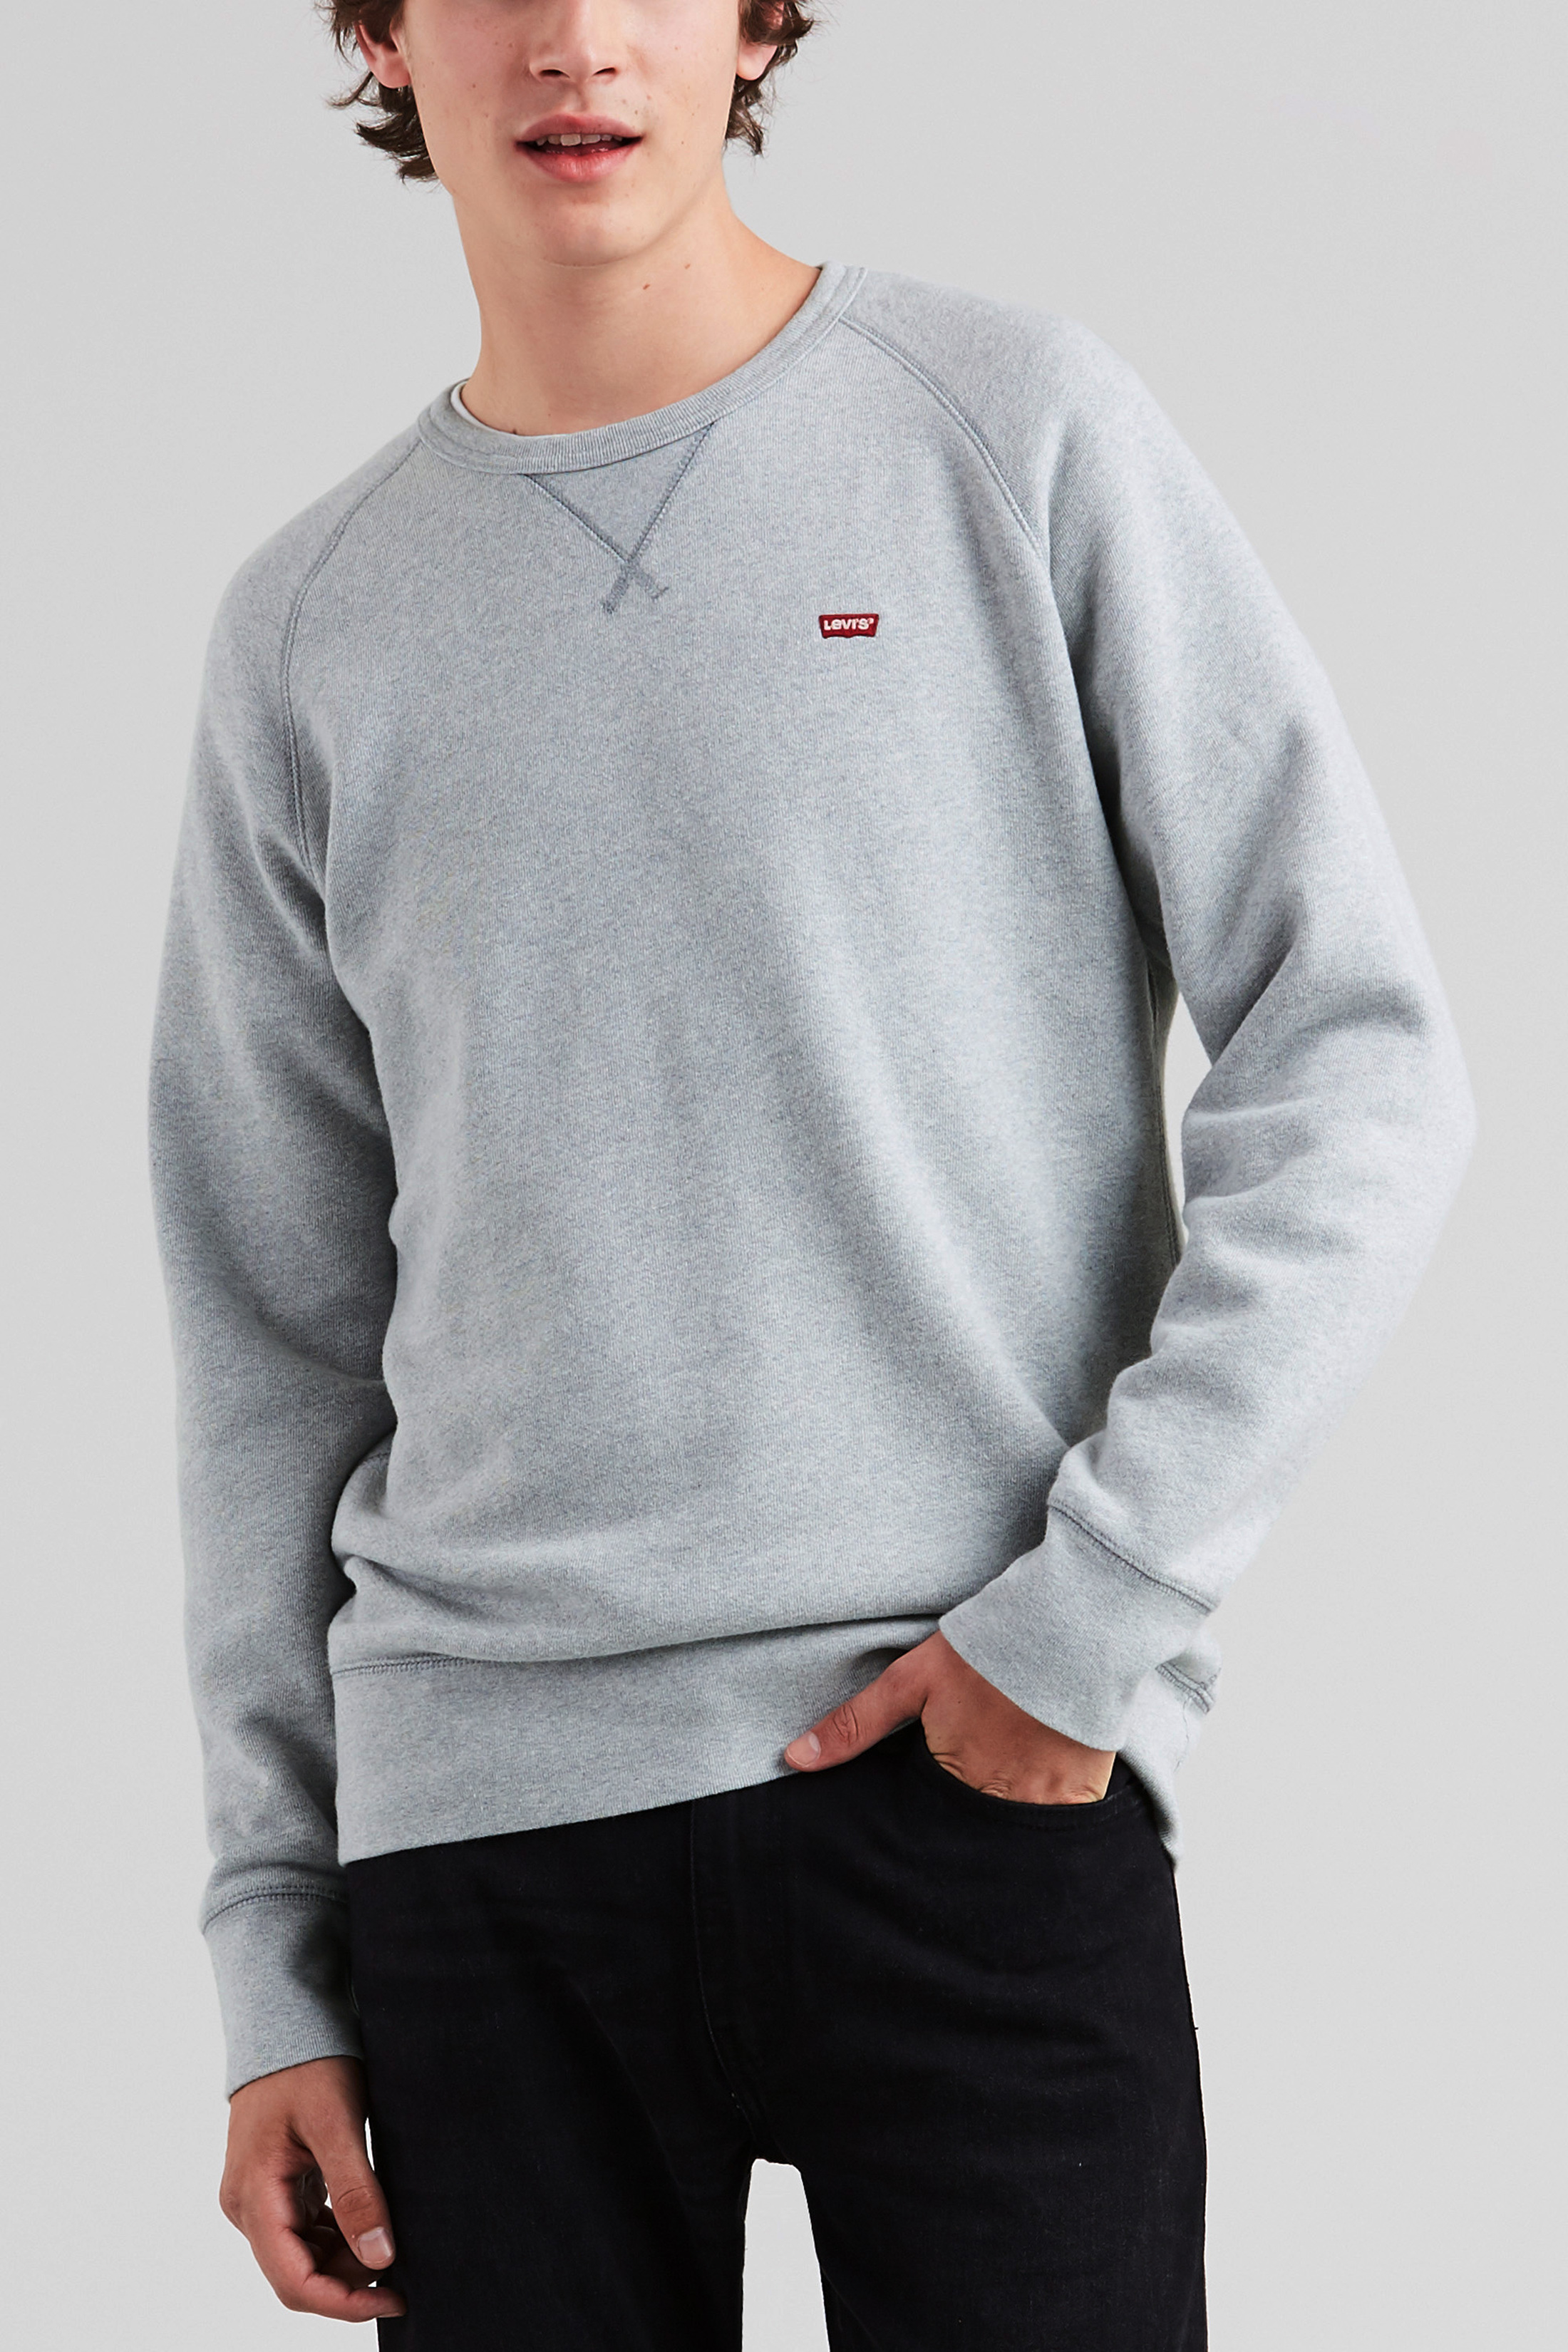 Levi's Original Sweater Grey photo 4